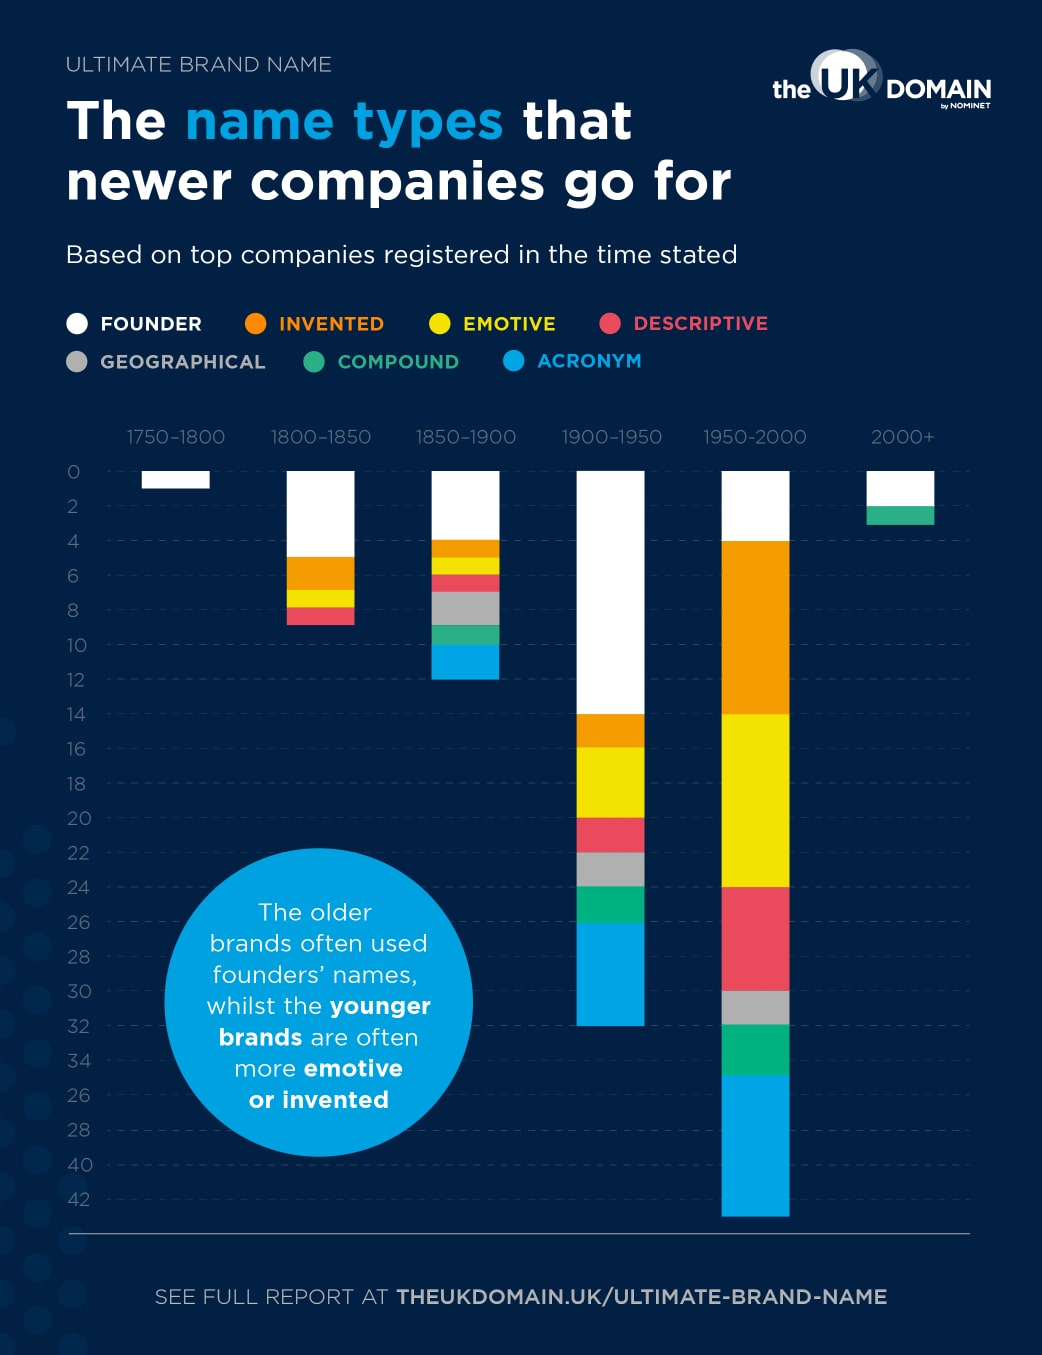 Bar chart depicting the name types that newer companies go for